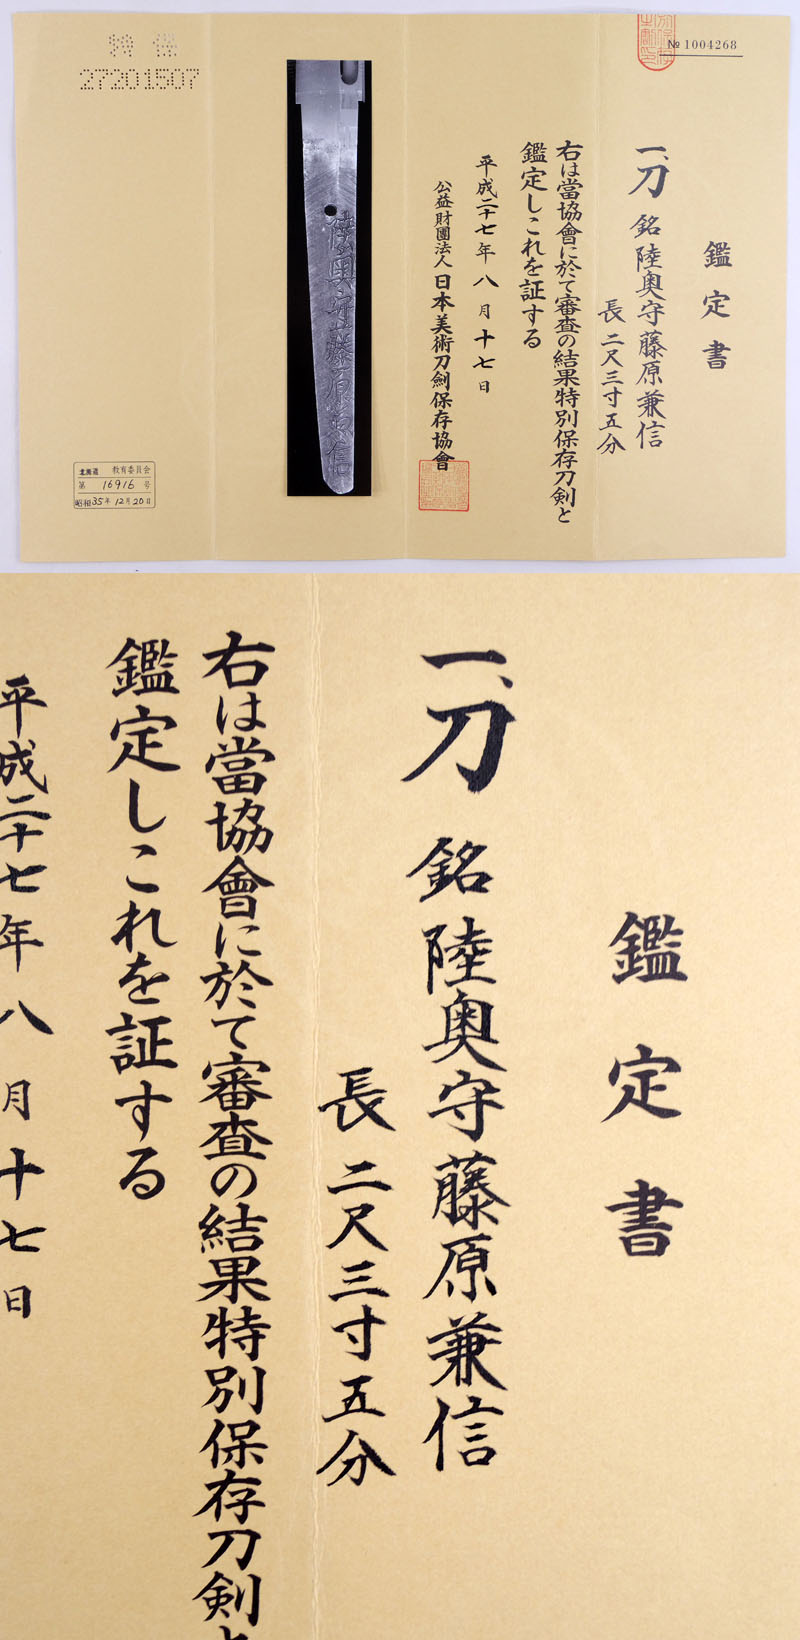 陸奥守藤原兼信 Picture of Certificate